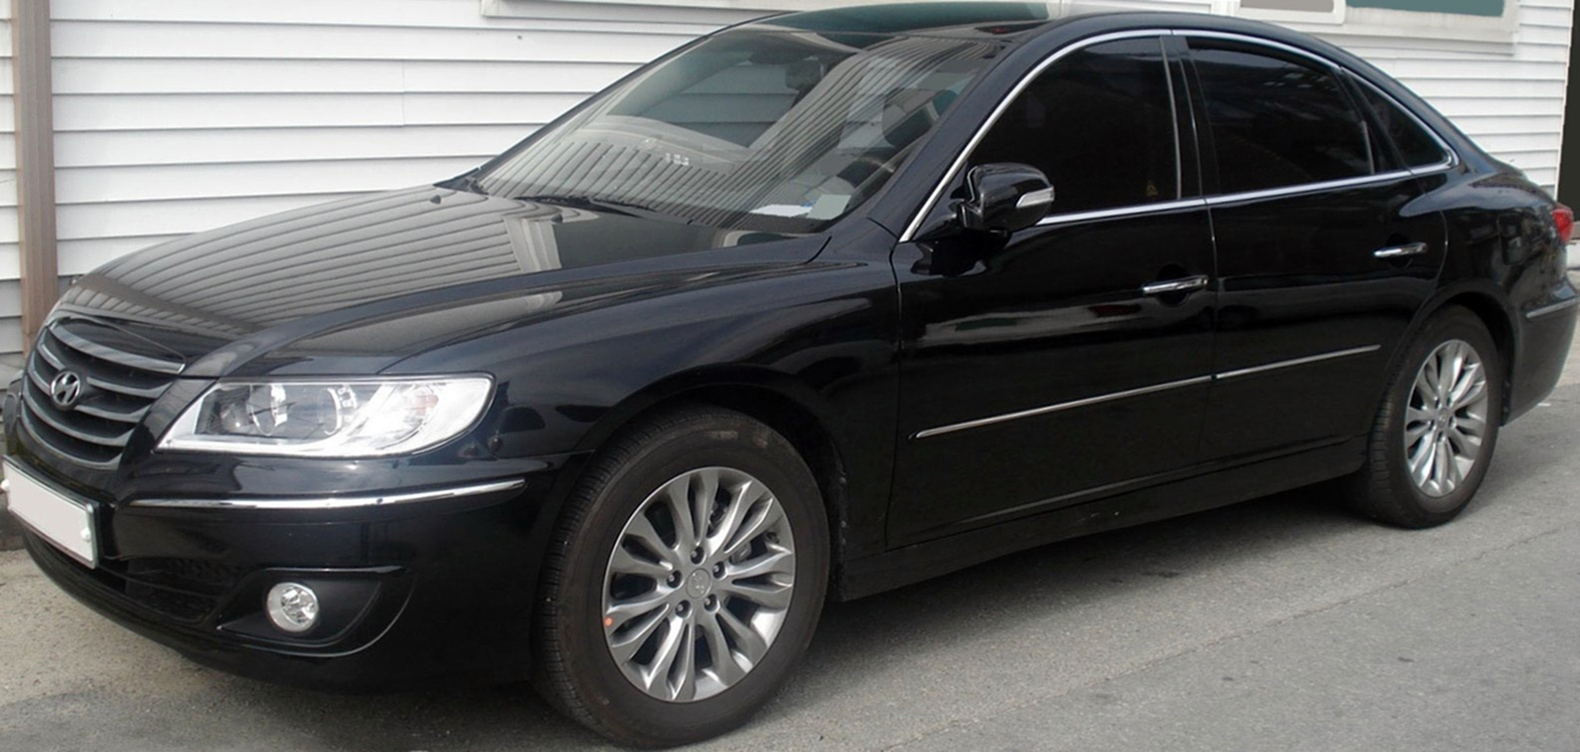 Hyundai Grandeur photo 12